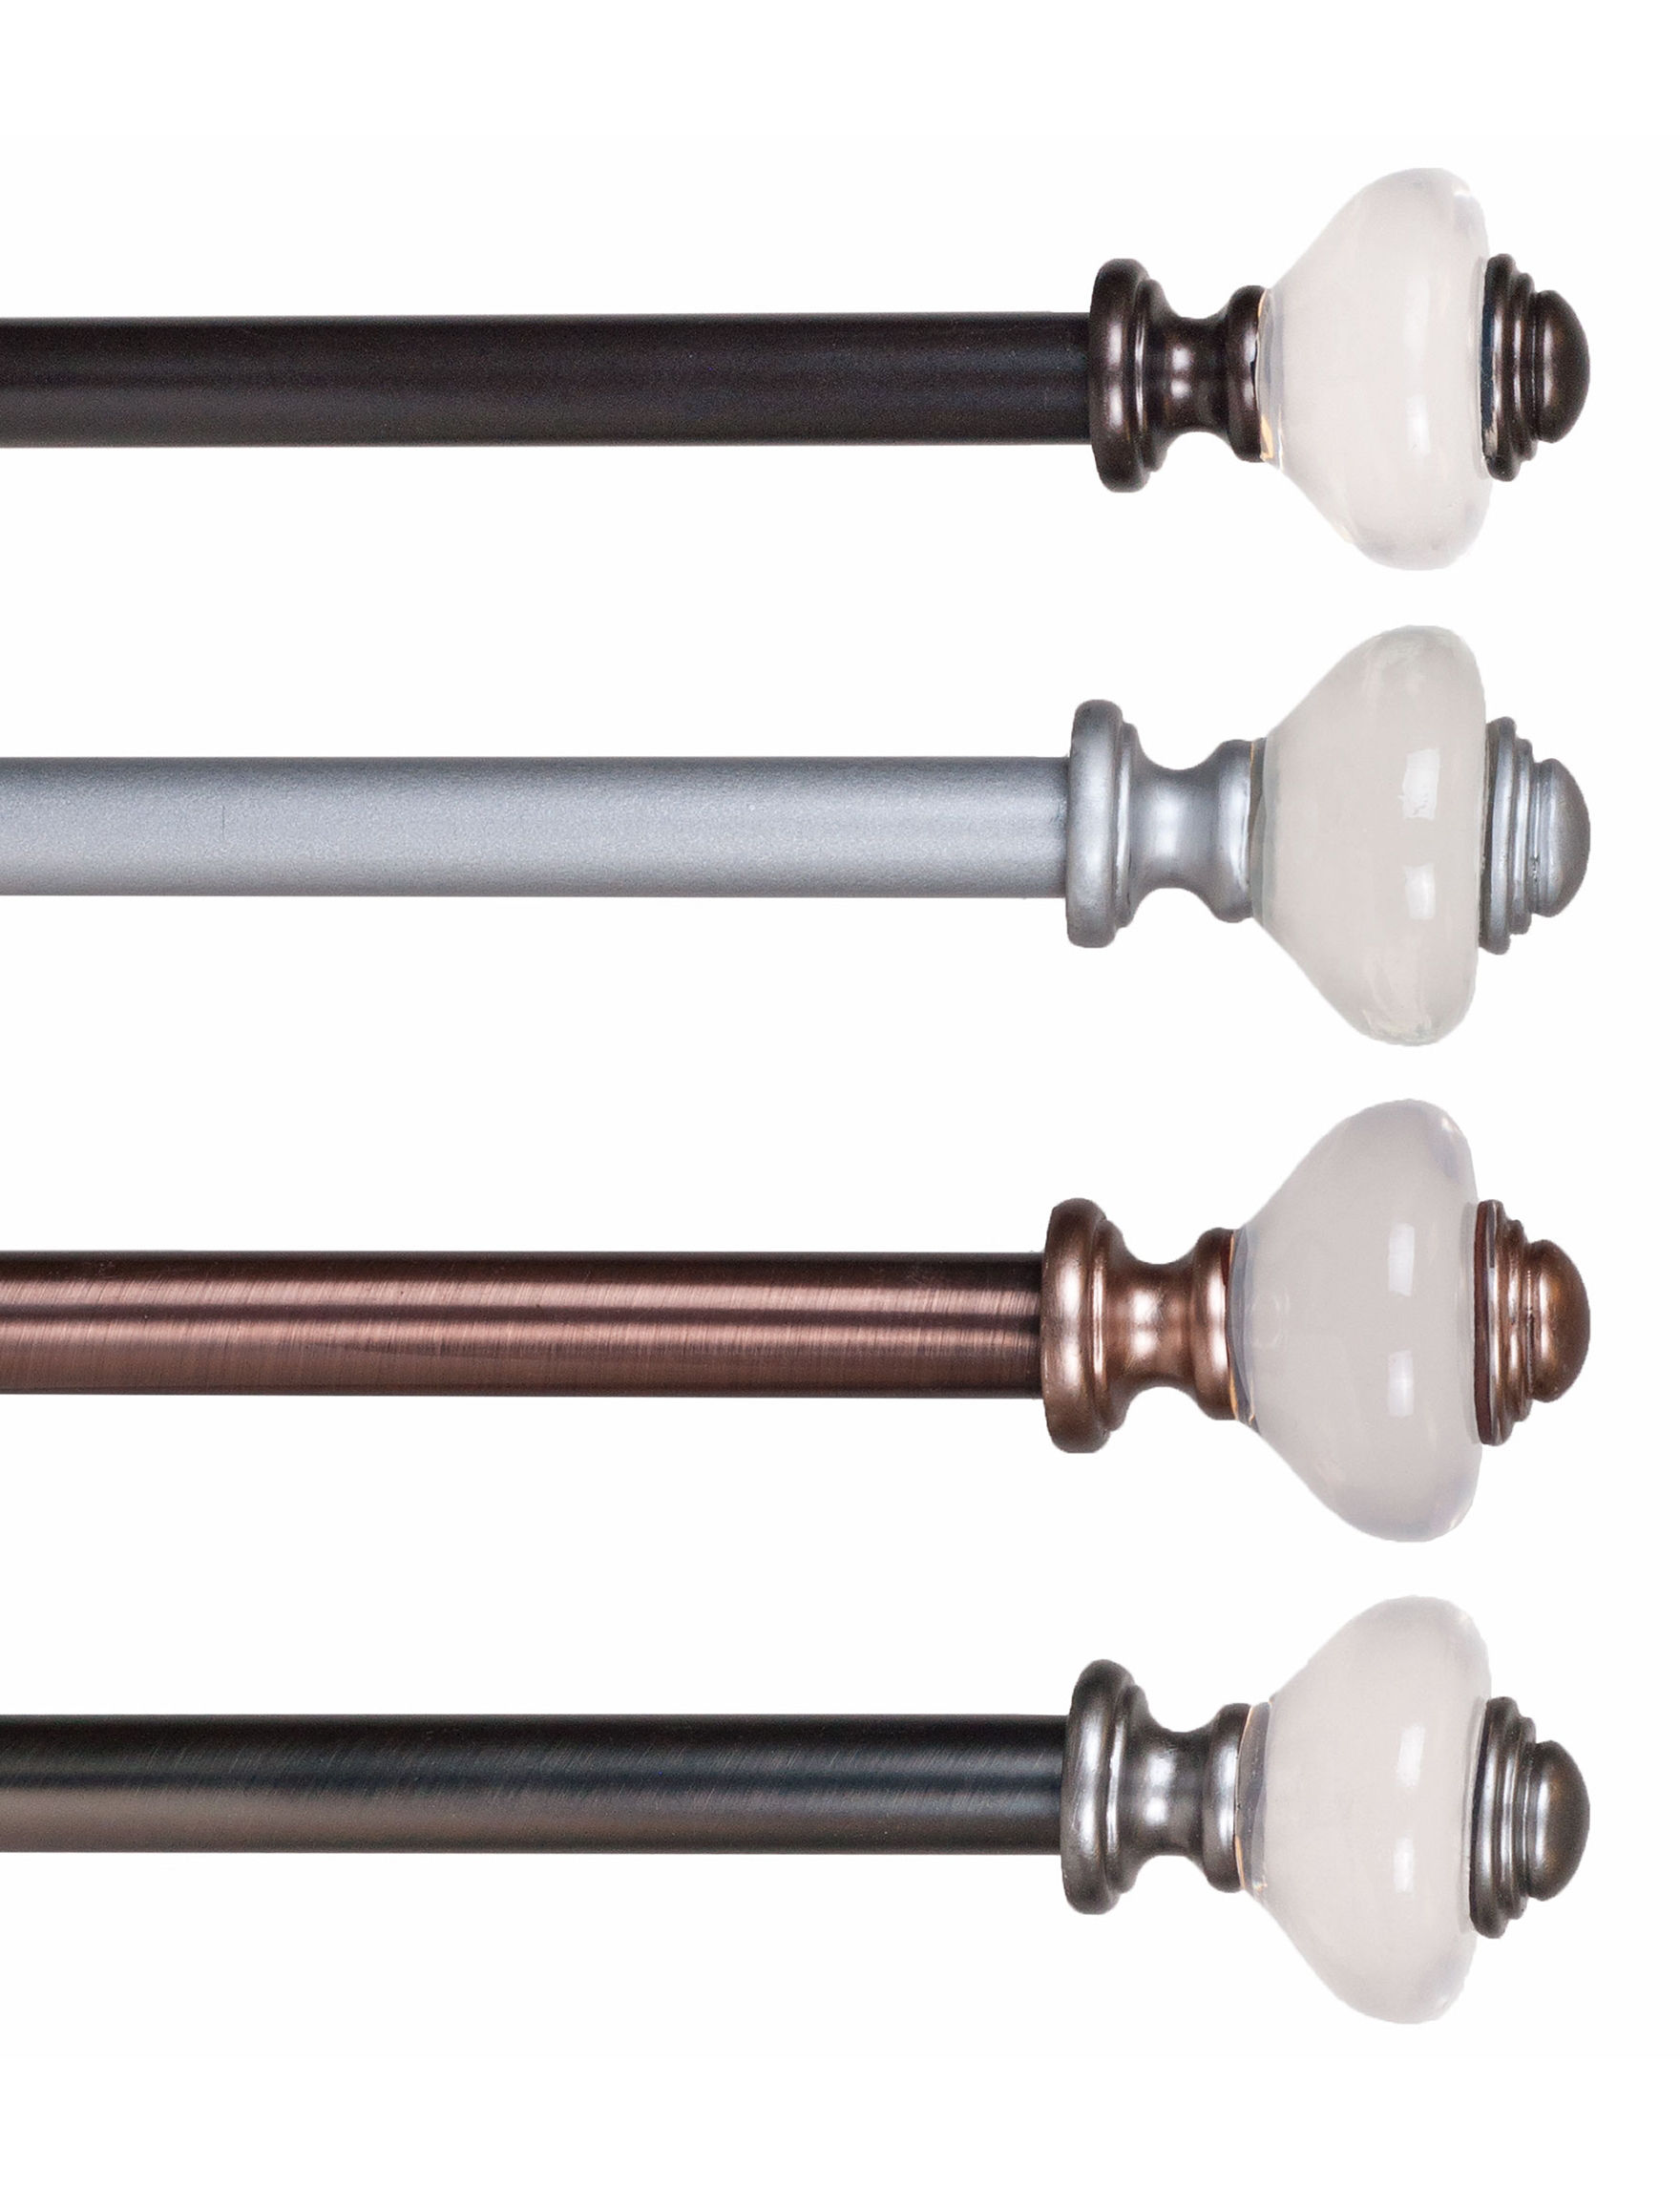 Lavish Home Copper Curtain Rods & Hardware Window Treatments